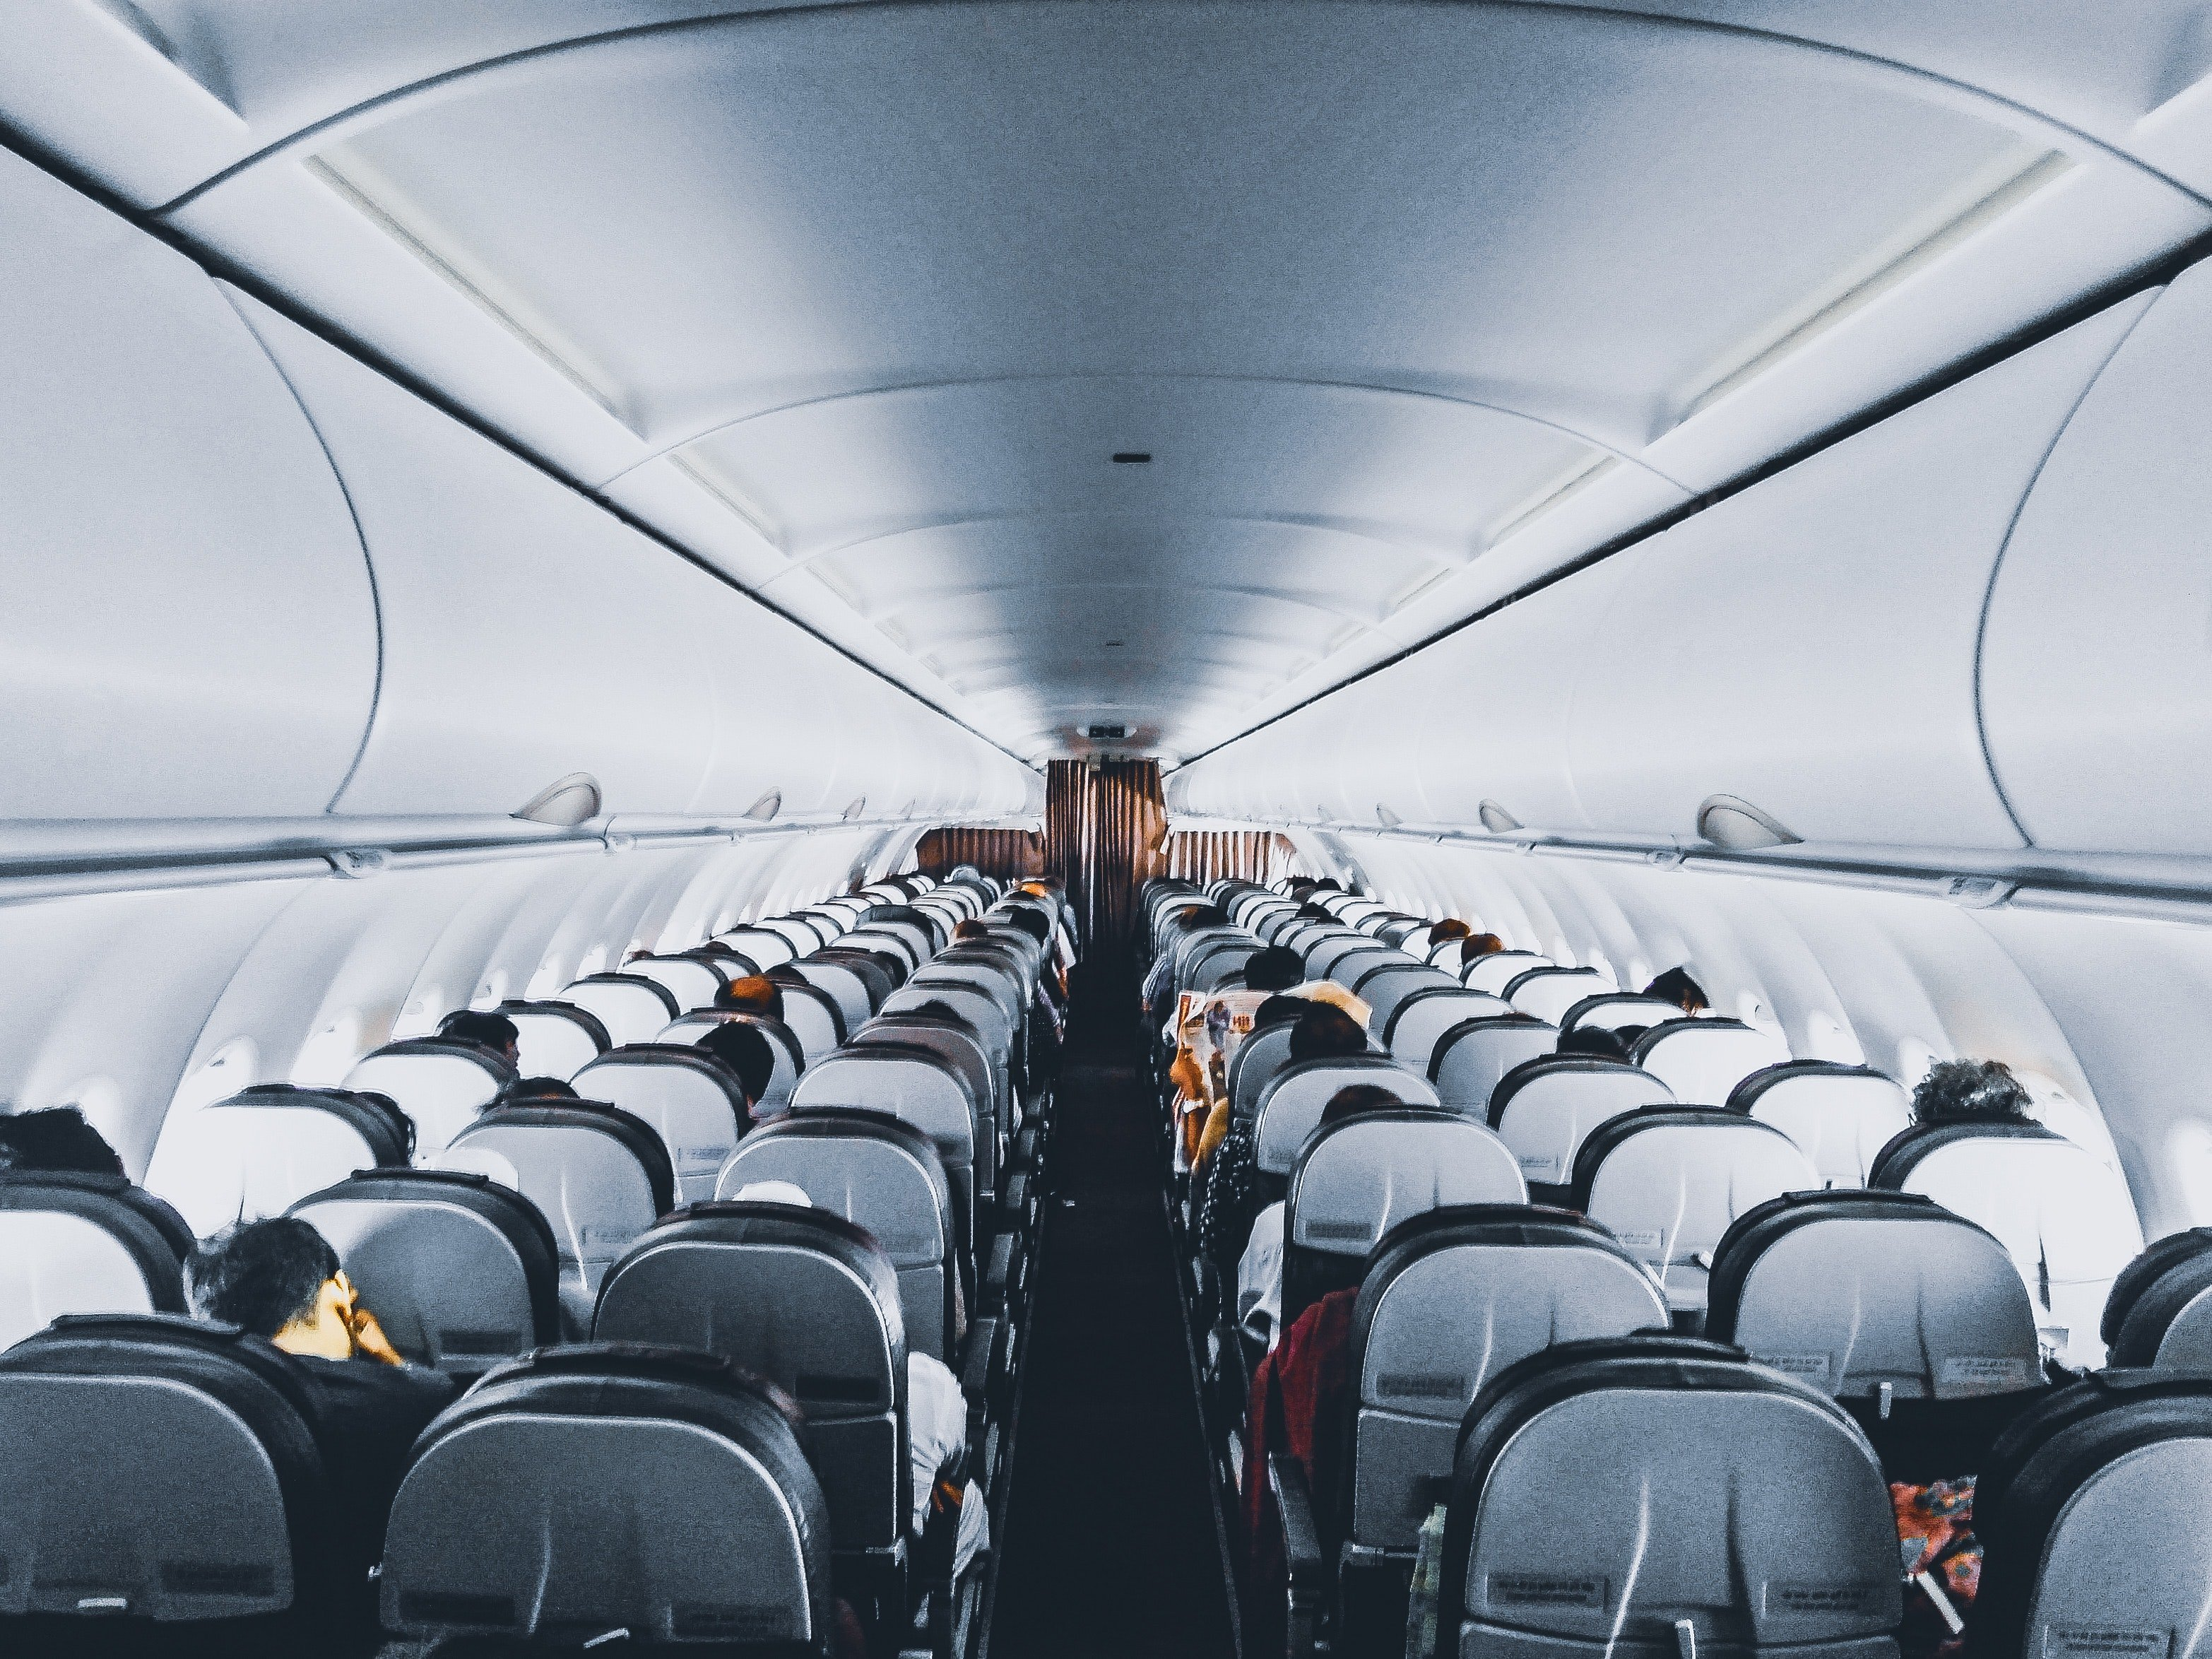 The attendant informed the pilot and he immediately connected with the nearest airport to request permission to land | Source: Pexels